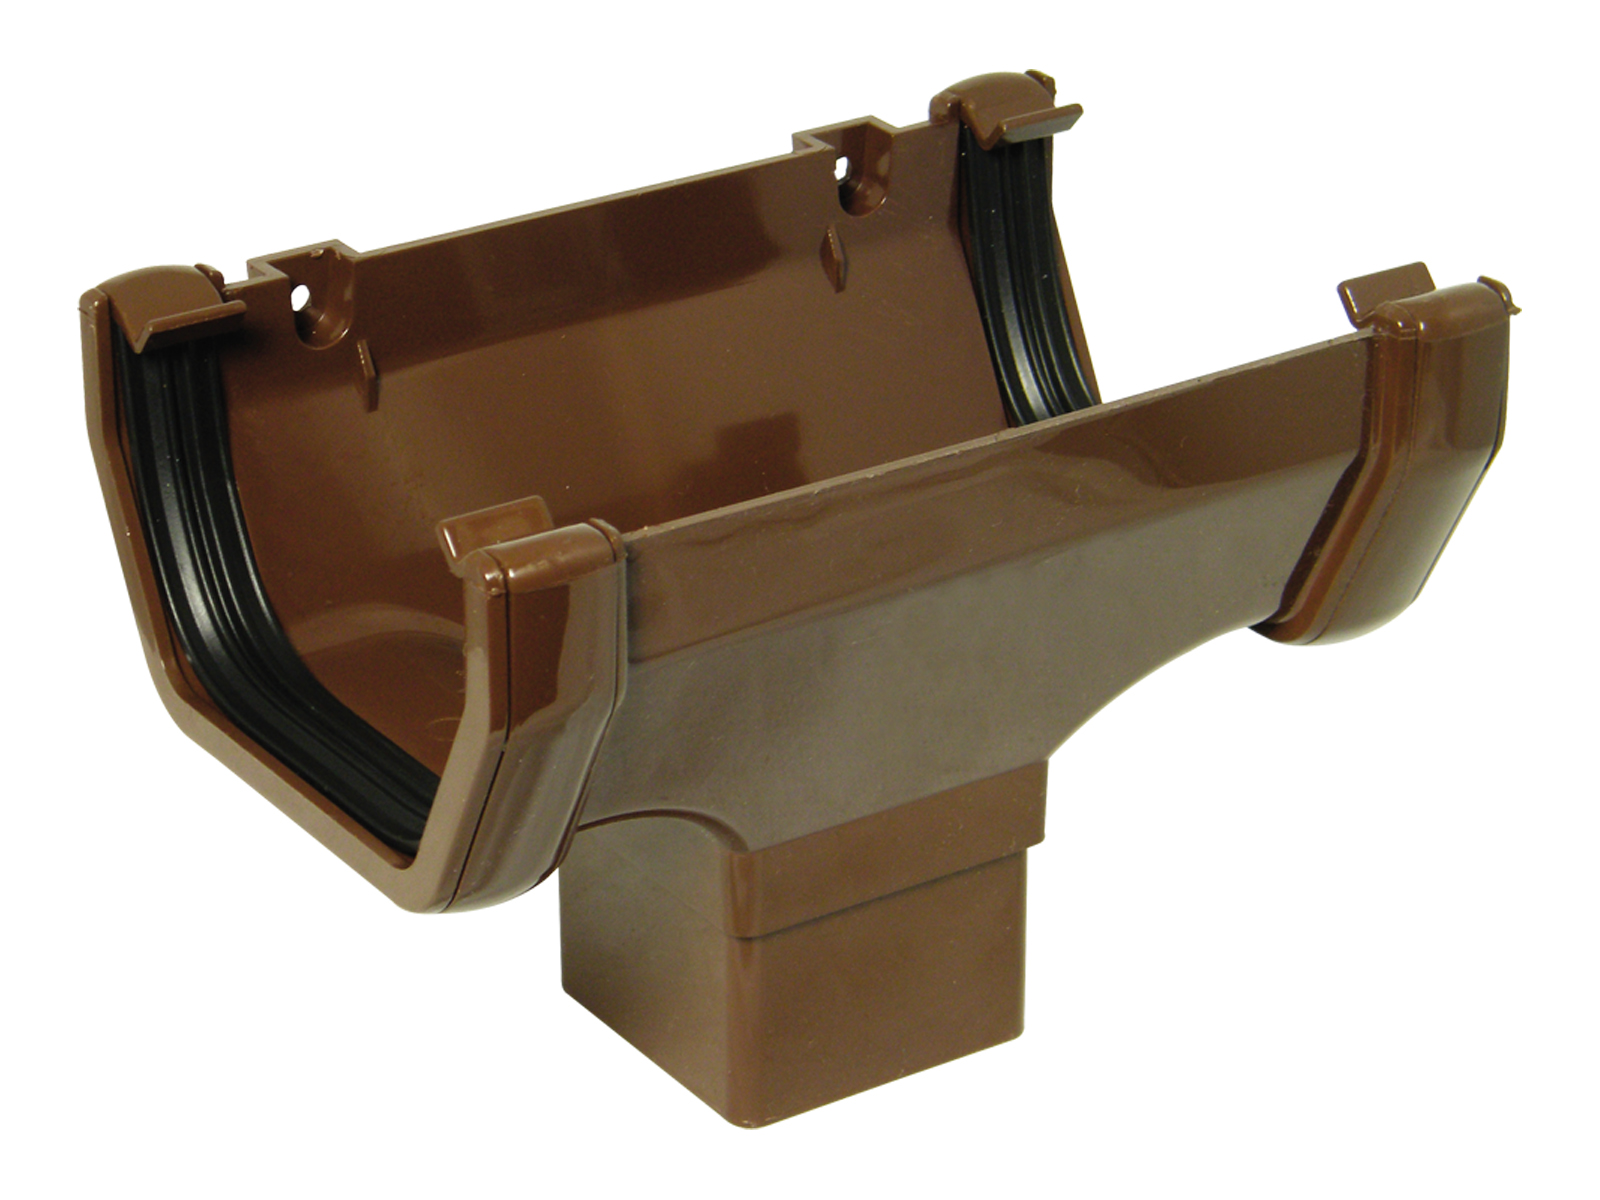 FLOPLAST SQUARE LINE GUTTER - ROS1 RUNNING OUTLET - BROWN